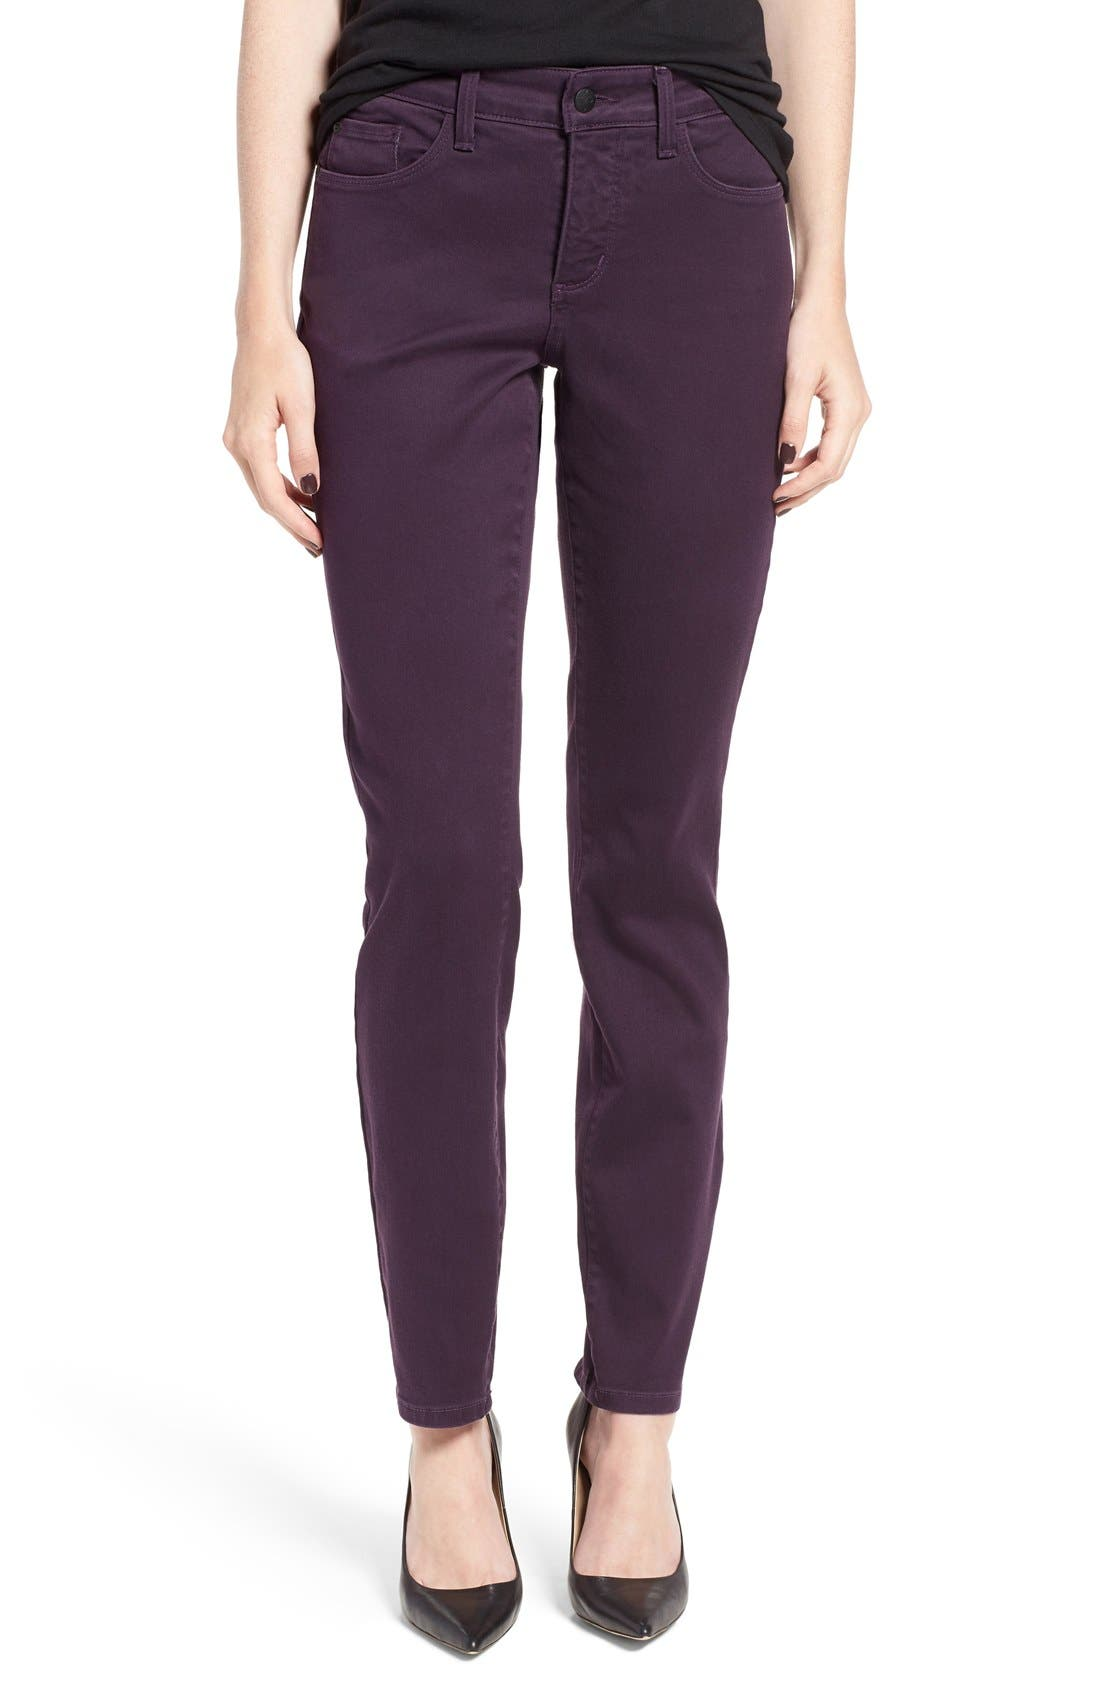 Alina Colored Stretch Skinny Jeans,                             Main thumbnail 1, color,                             Deep Violette